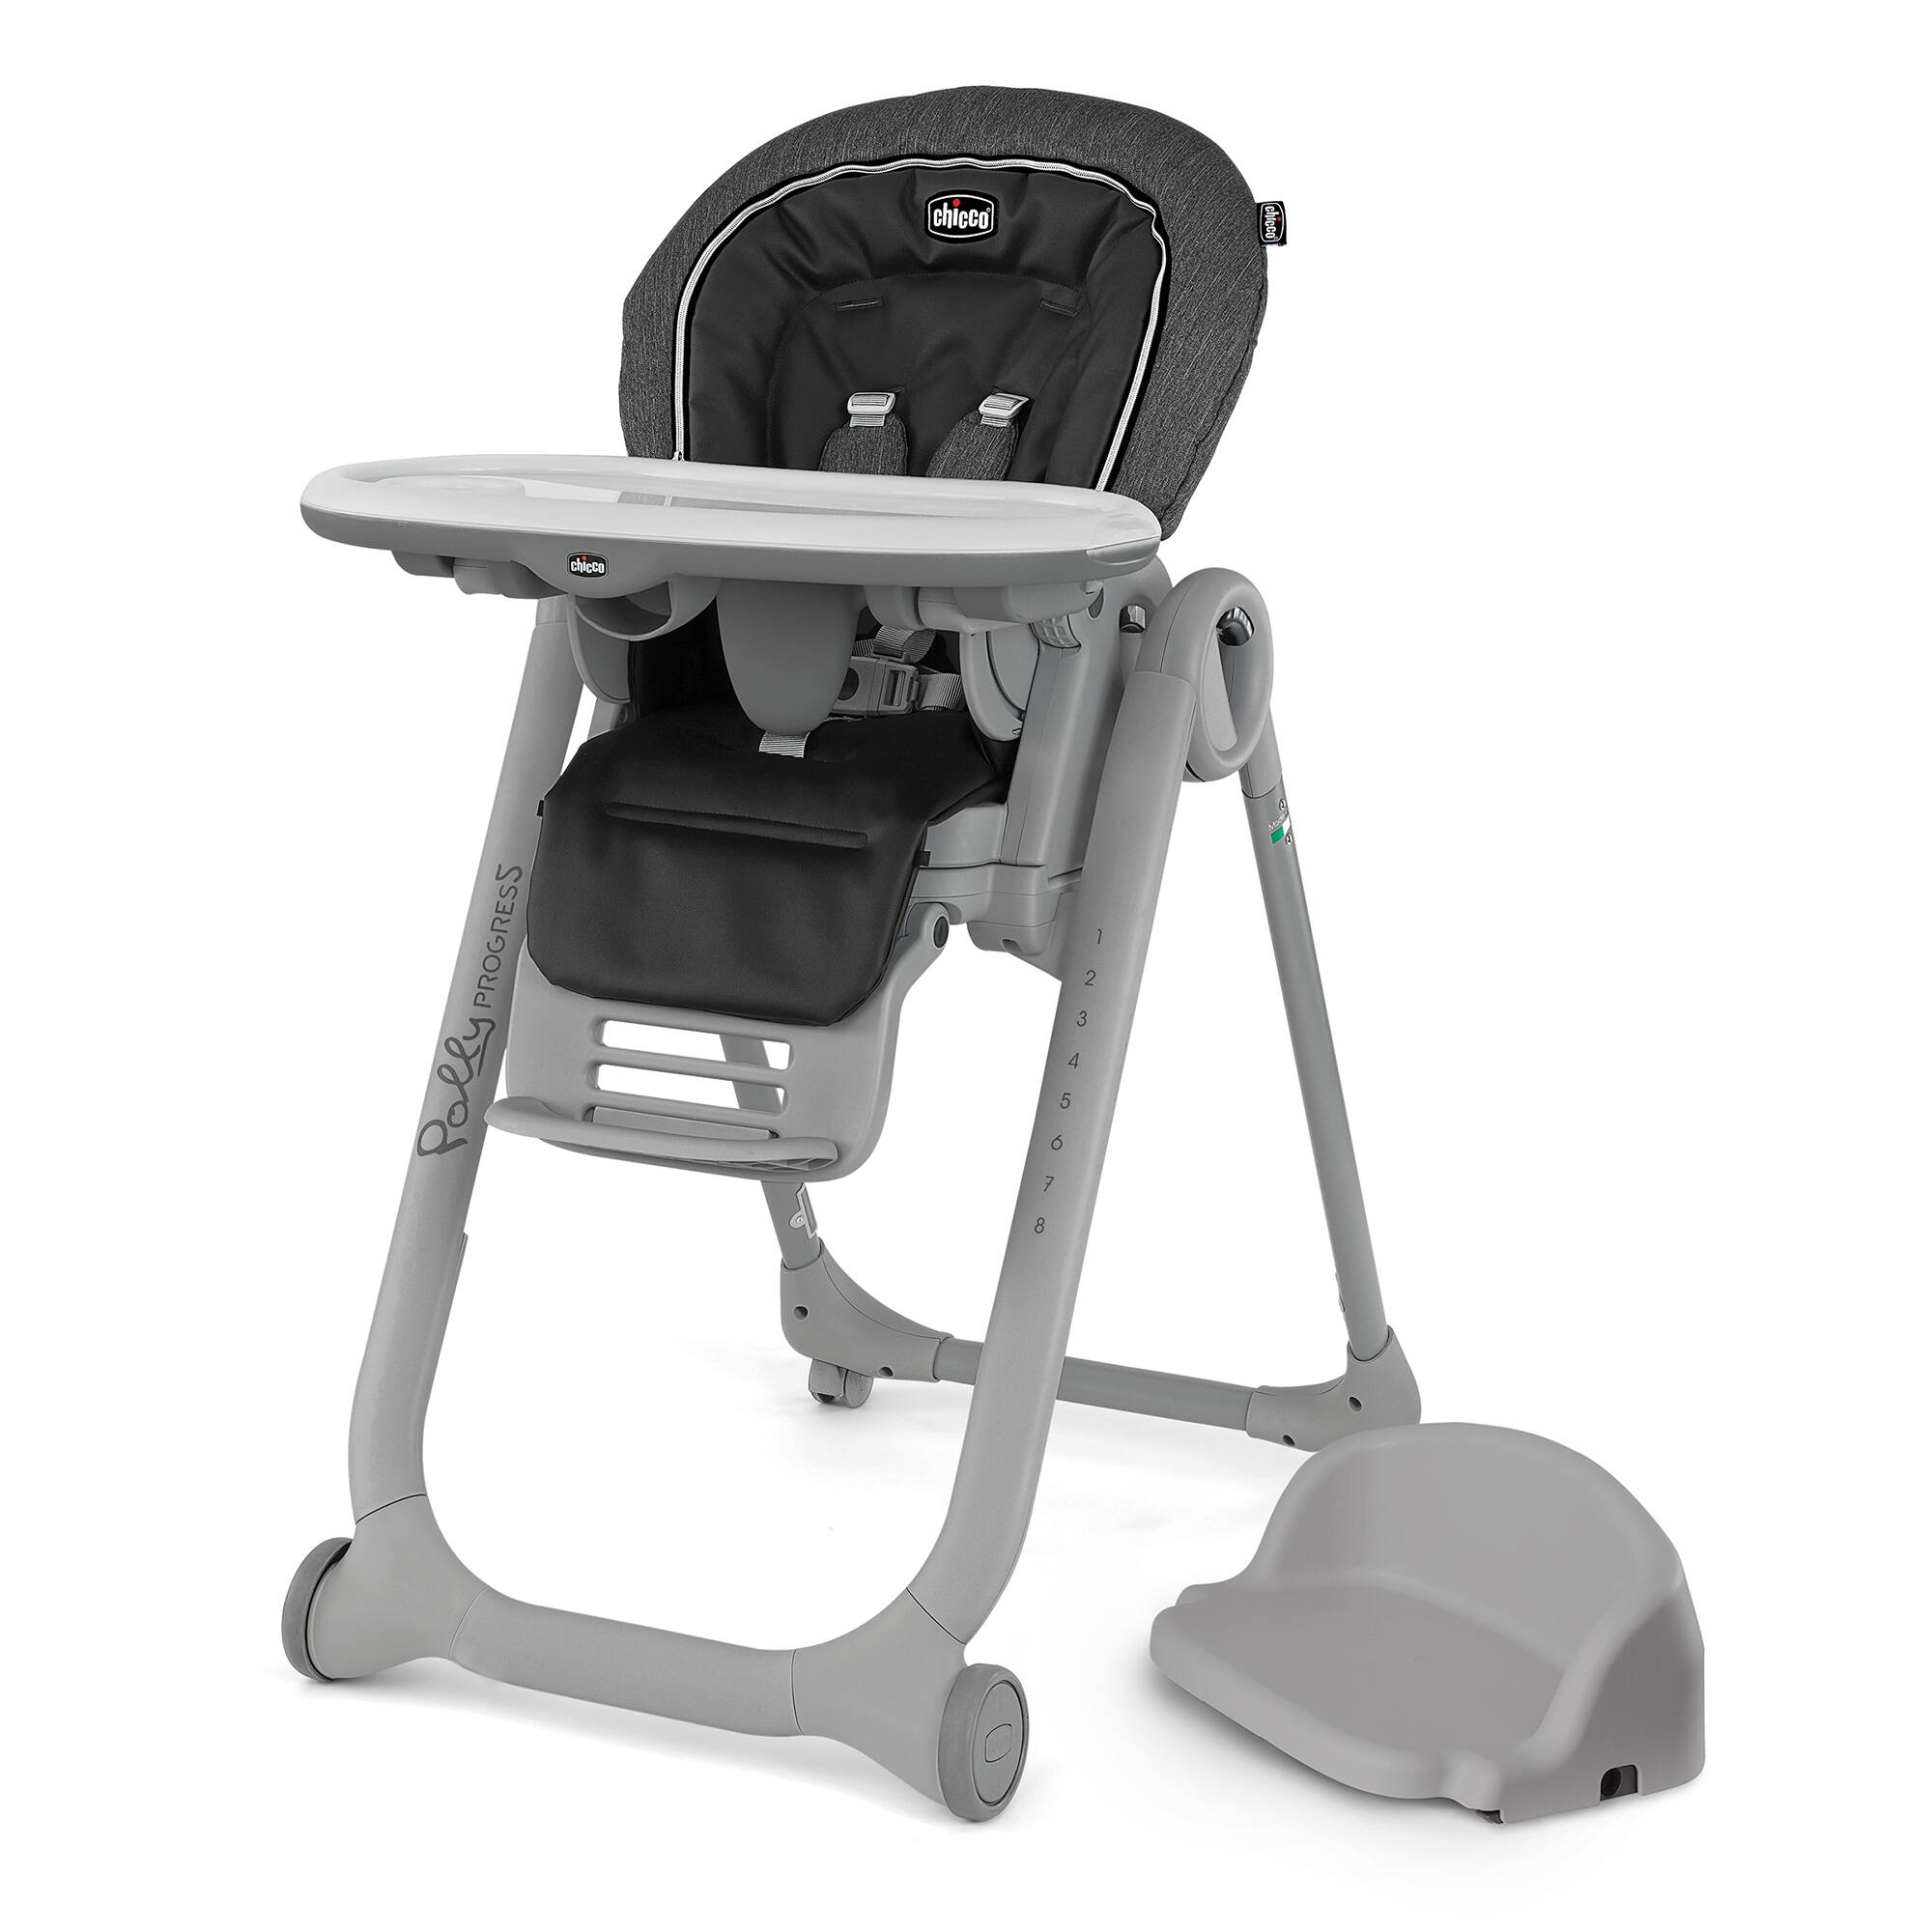 Chicco Polly Progress 5-in-1 Highchair - Minerale $100